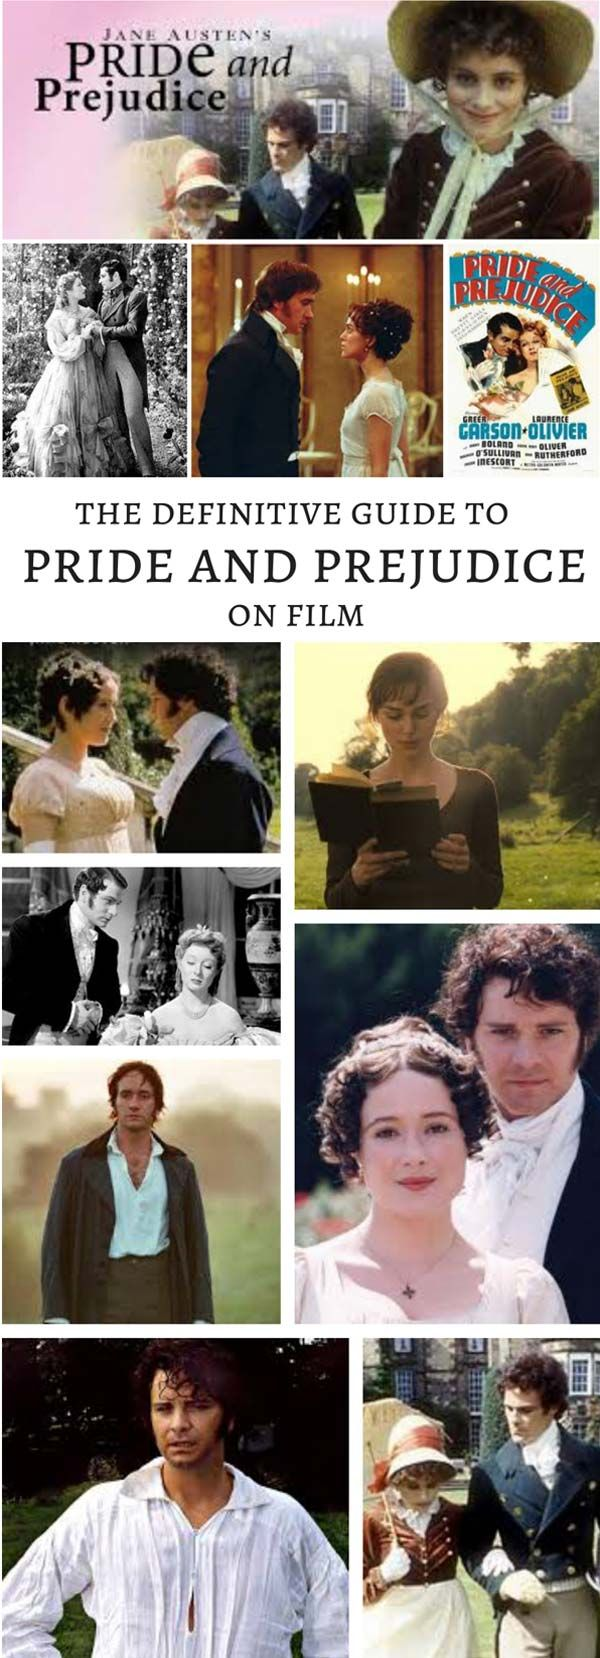 The Definitive Guide to Pride and Prejudice on Film. Did you know there are FOUR different movie adaptations of Jane Austen's Pride and Prejudice? This is a fun look at the pros and cons of each version. #janeausten